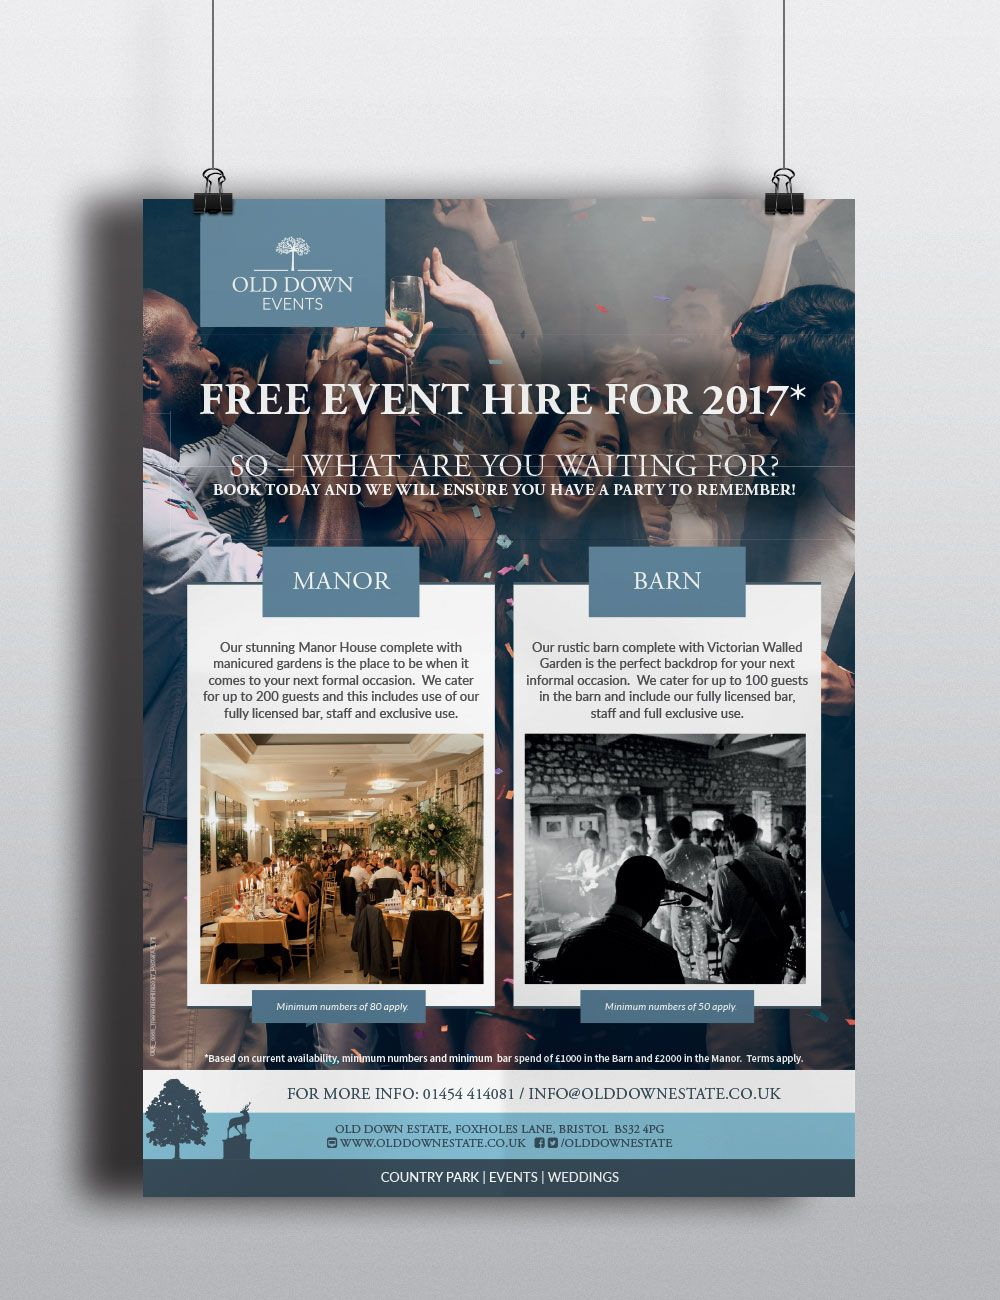 Poster design in indesign -  Design Down Event Free Hire Indesign Old Old